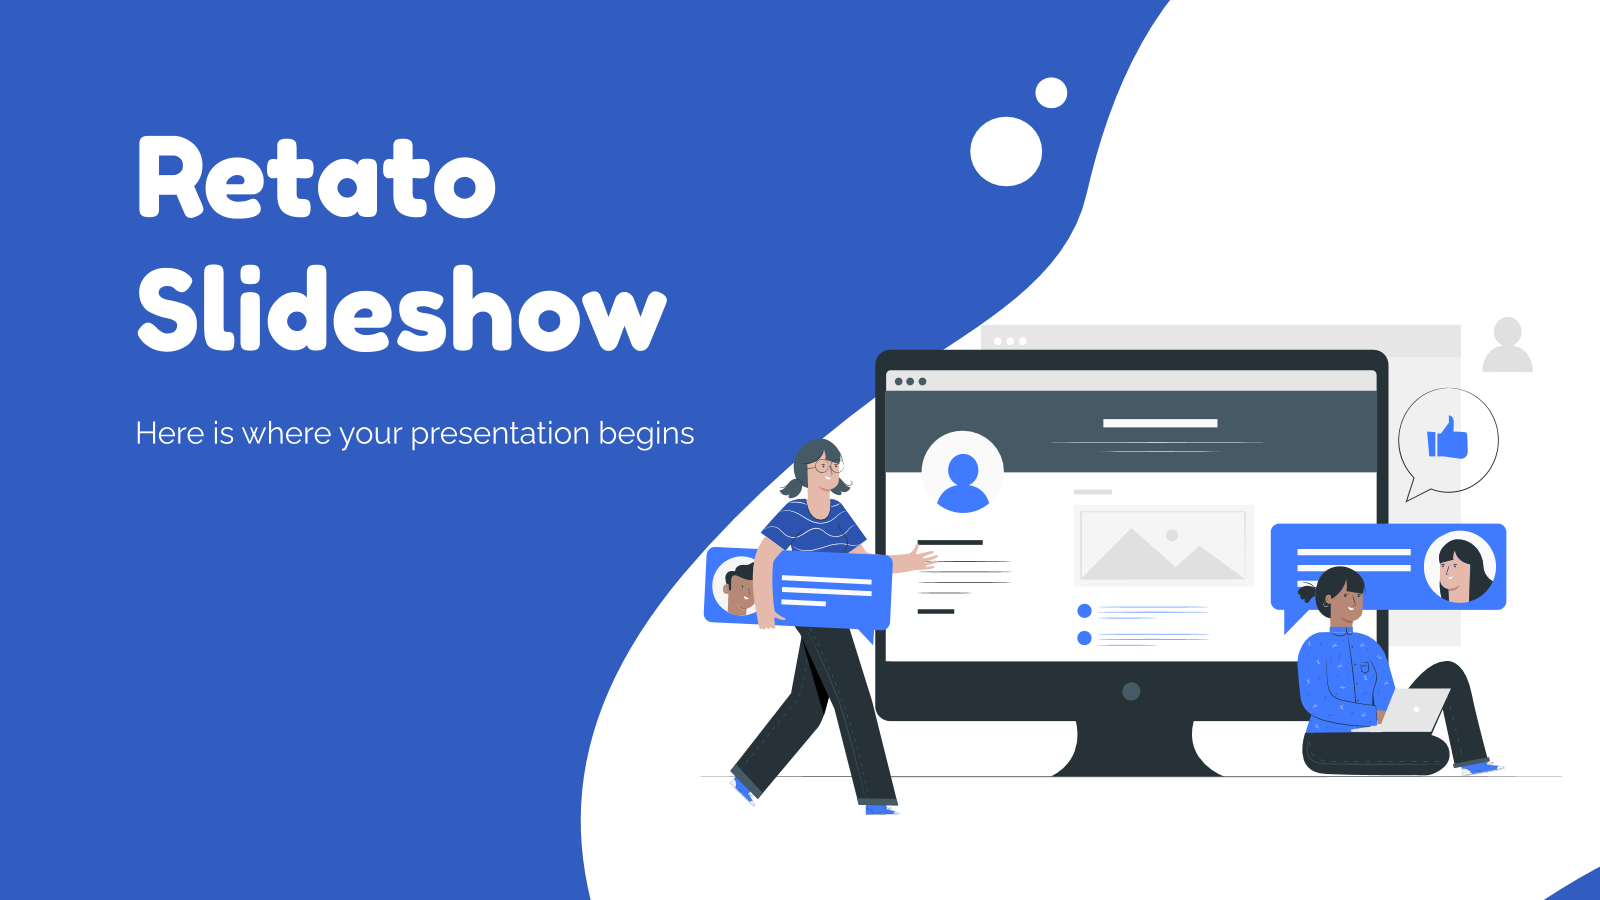 Retato Slideshow presentation template